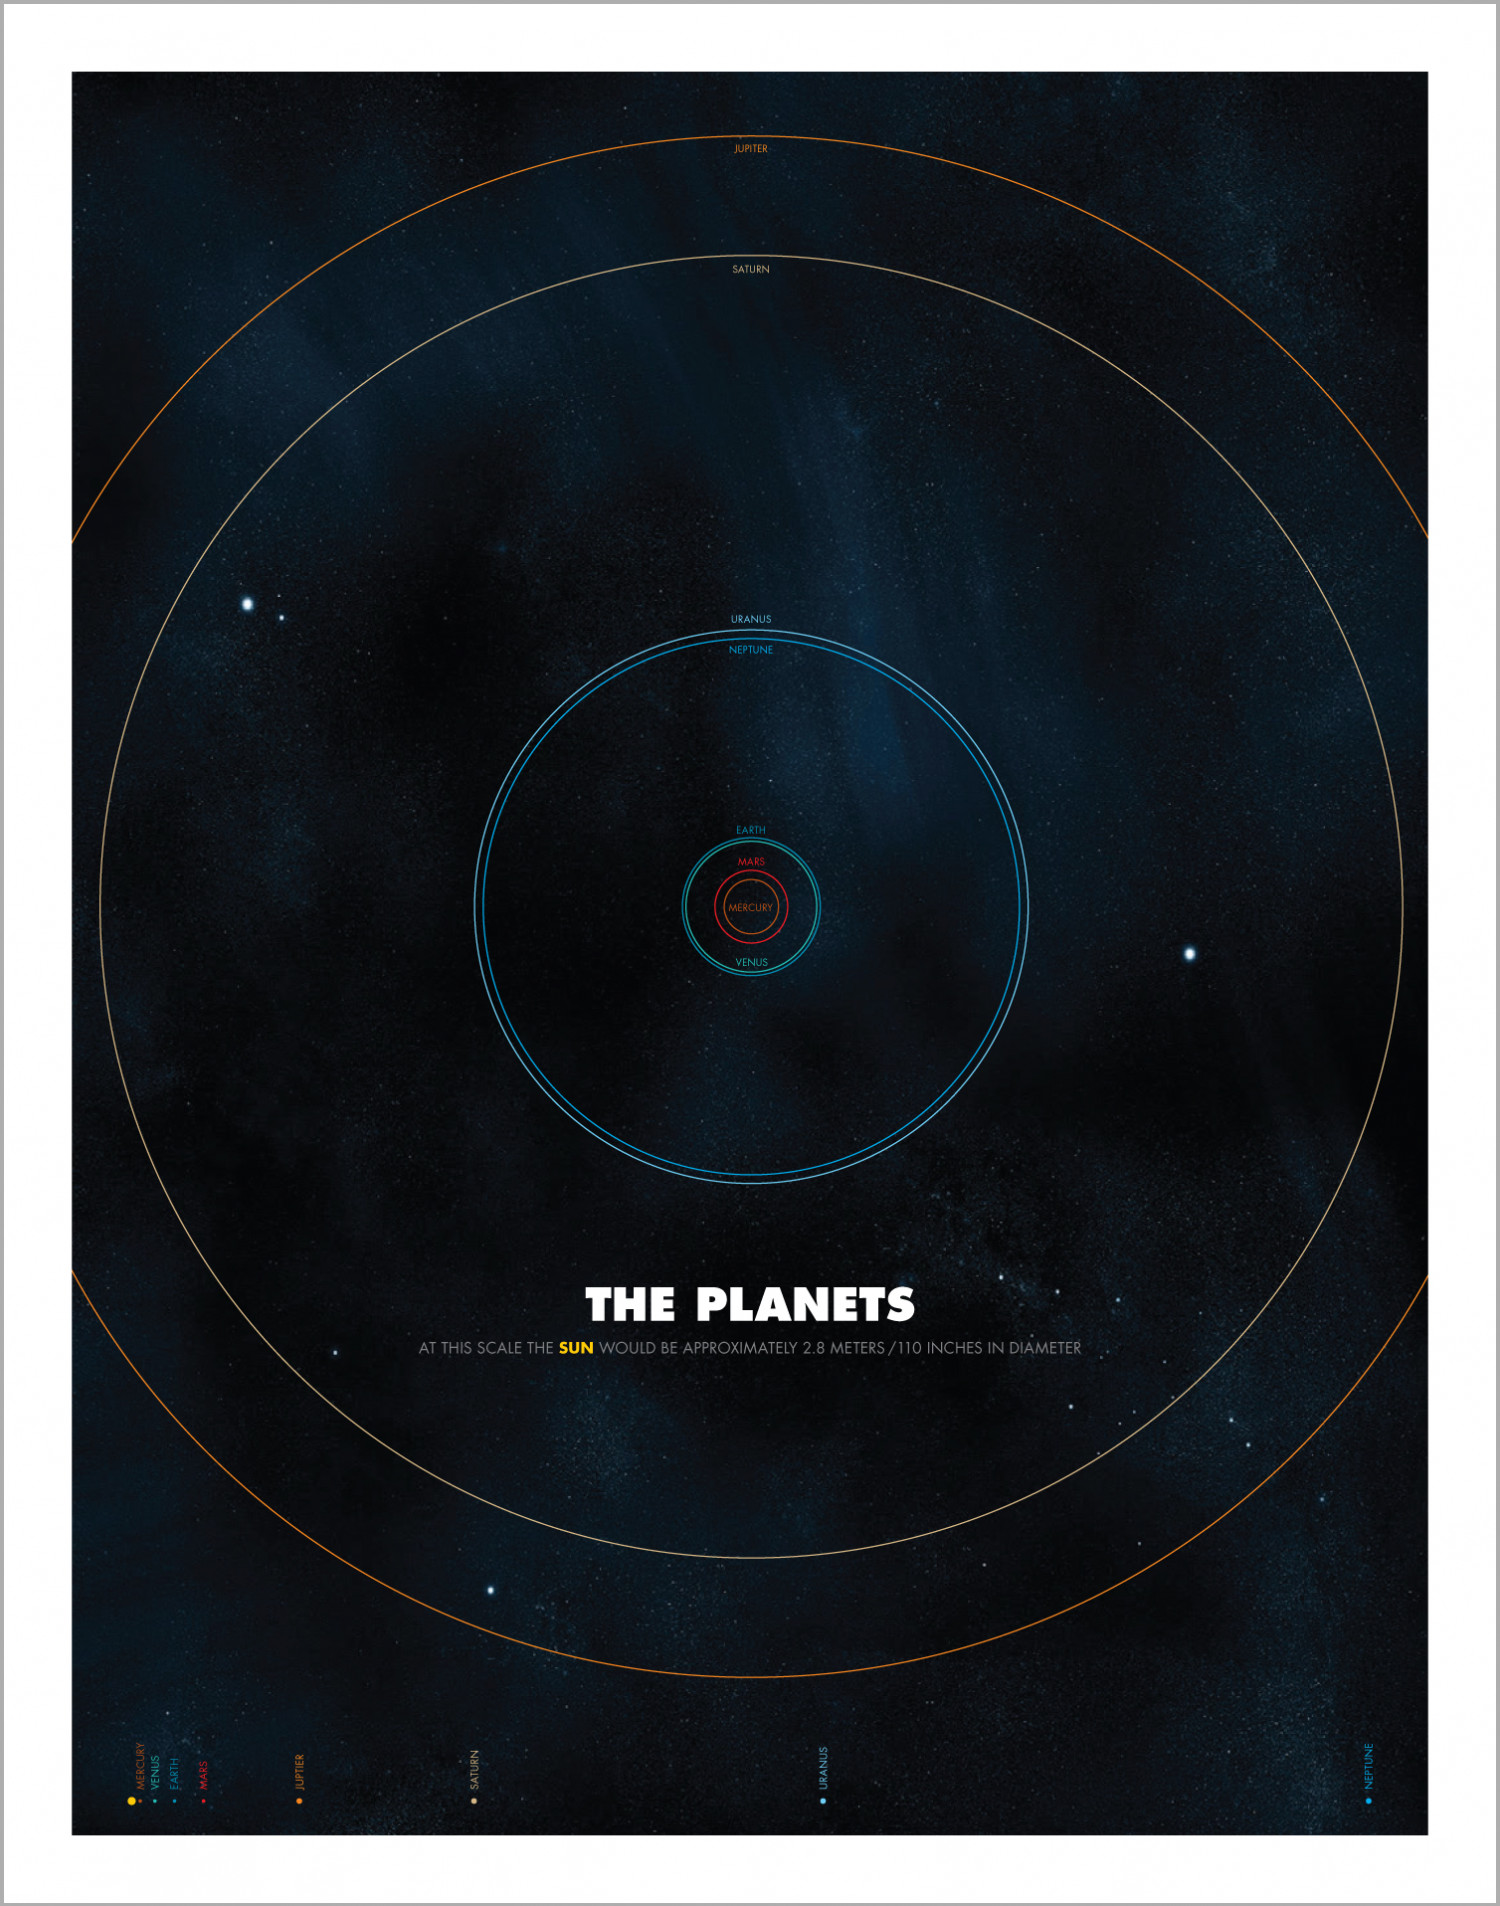 The Planets Infographic